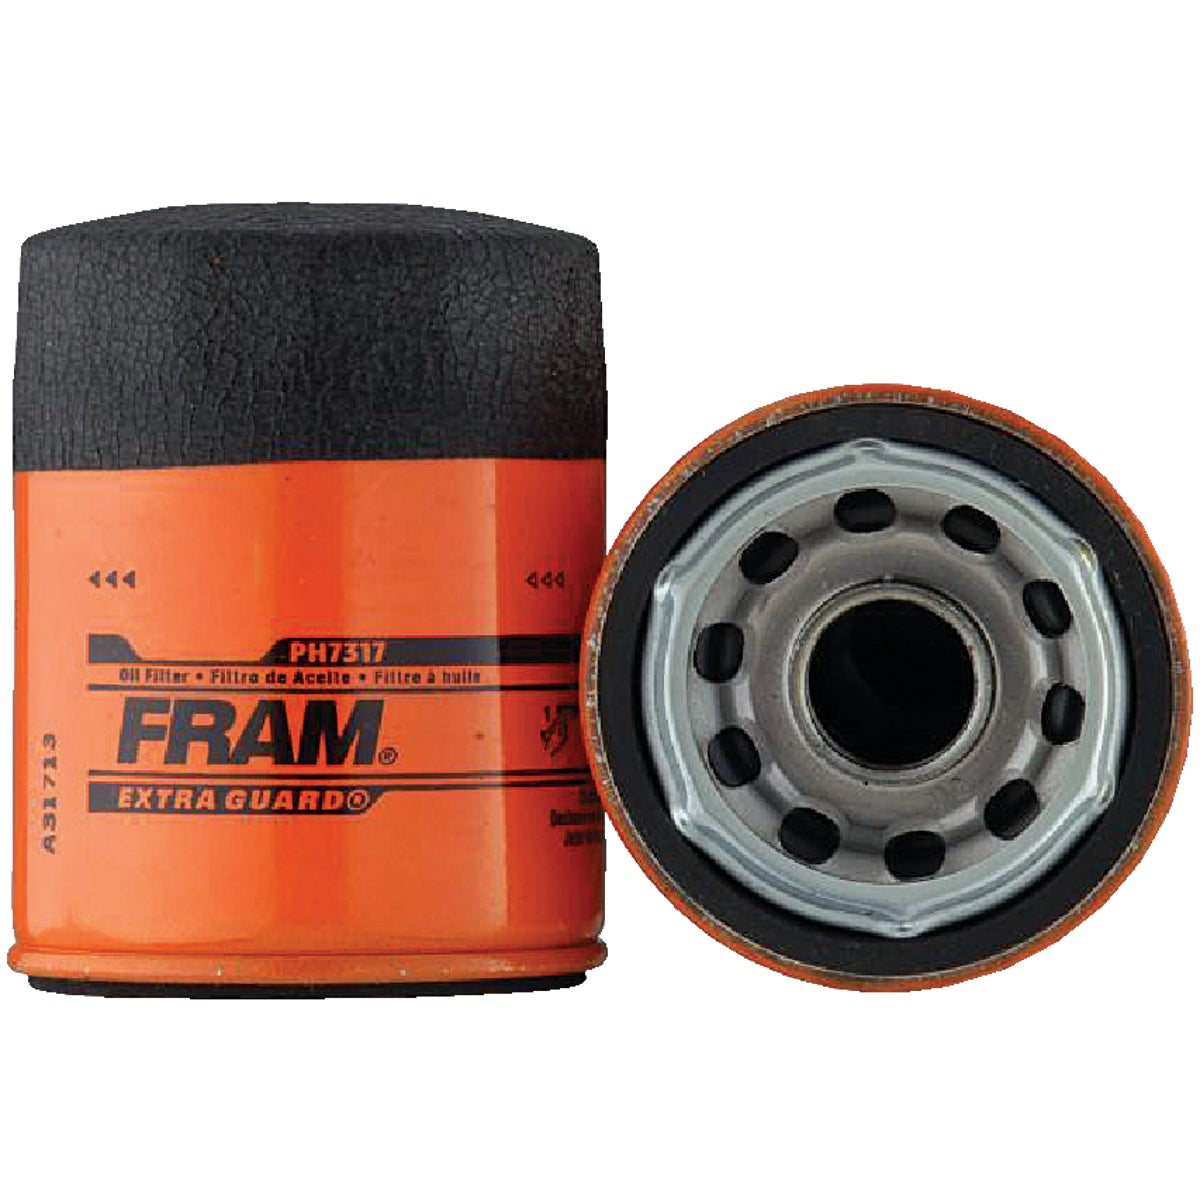 OIL FILTER - PH7317 by Fram Group